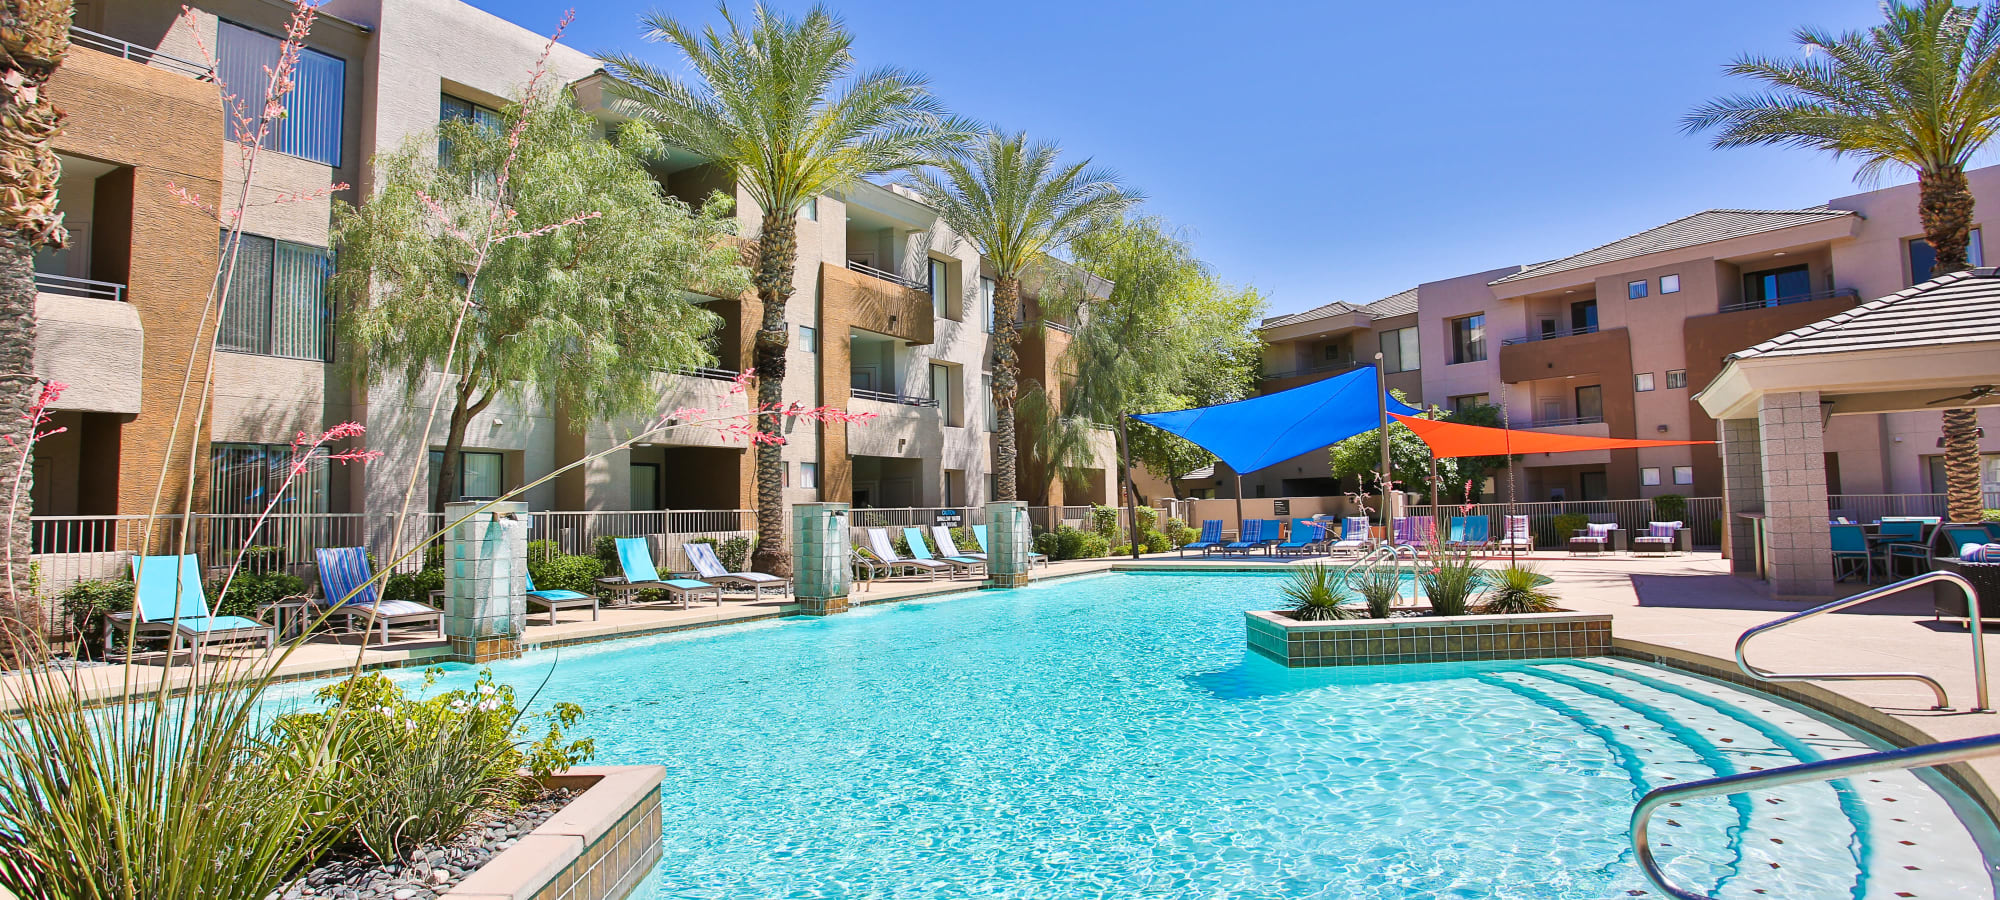 The beautiful community pool at Spectra on 7th South in Phoenix, Arizona